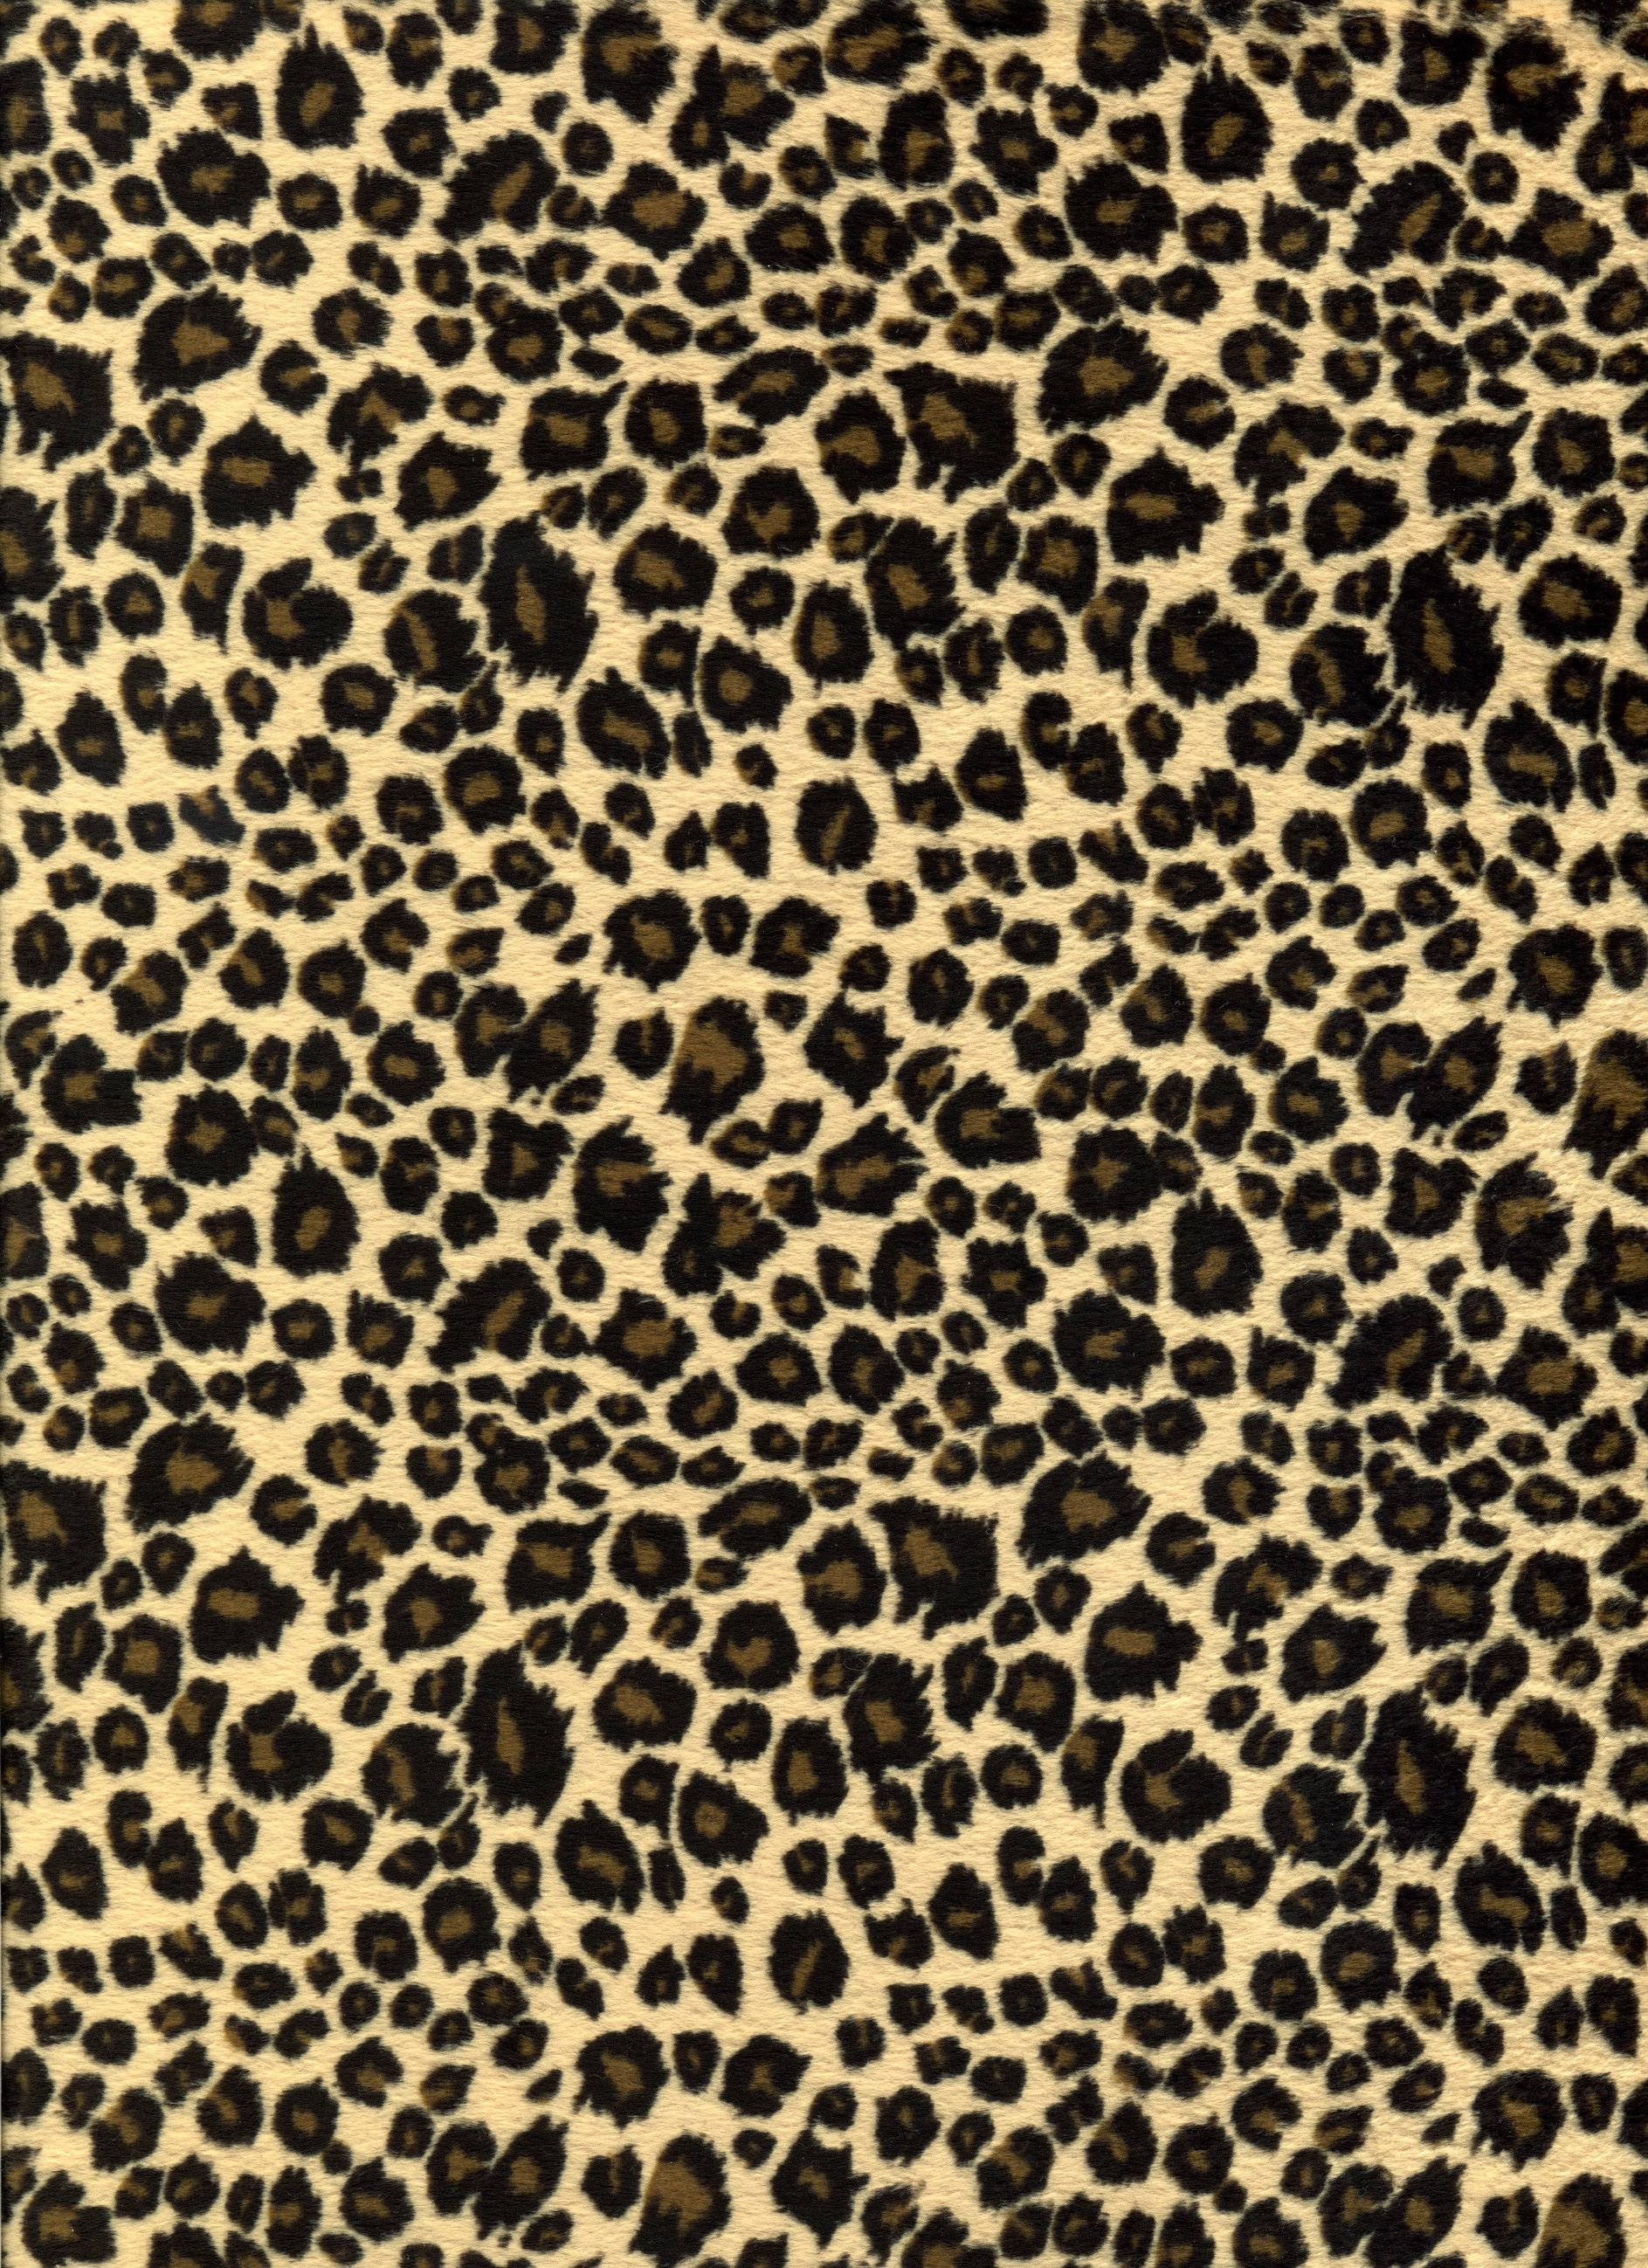 animal print desktop wallpaper background ... | Wallpaper | Animal print wallpaper, Leopard ...